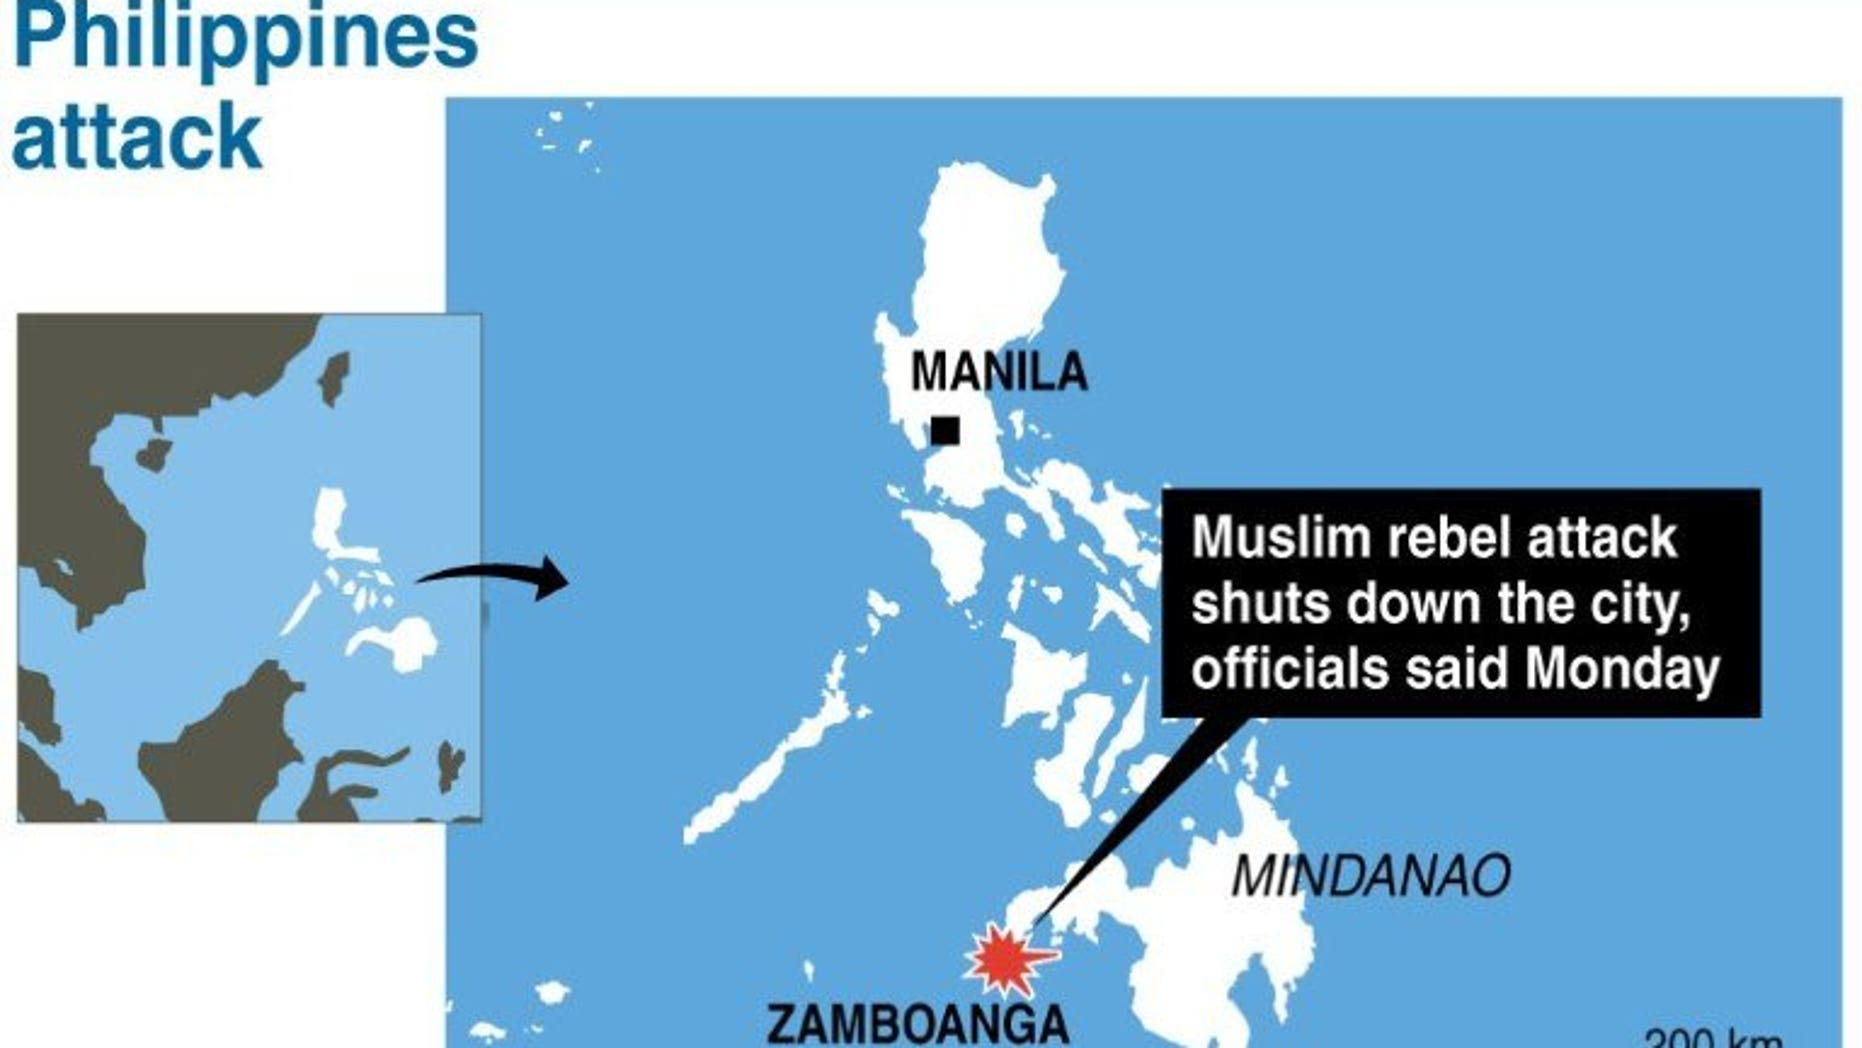 Map locating Zamboanga in the Philippines were an attack by Muslim rebels has closed down the city, according to officials Monday.